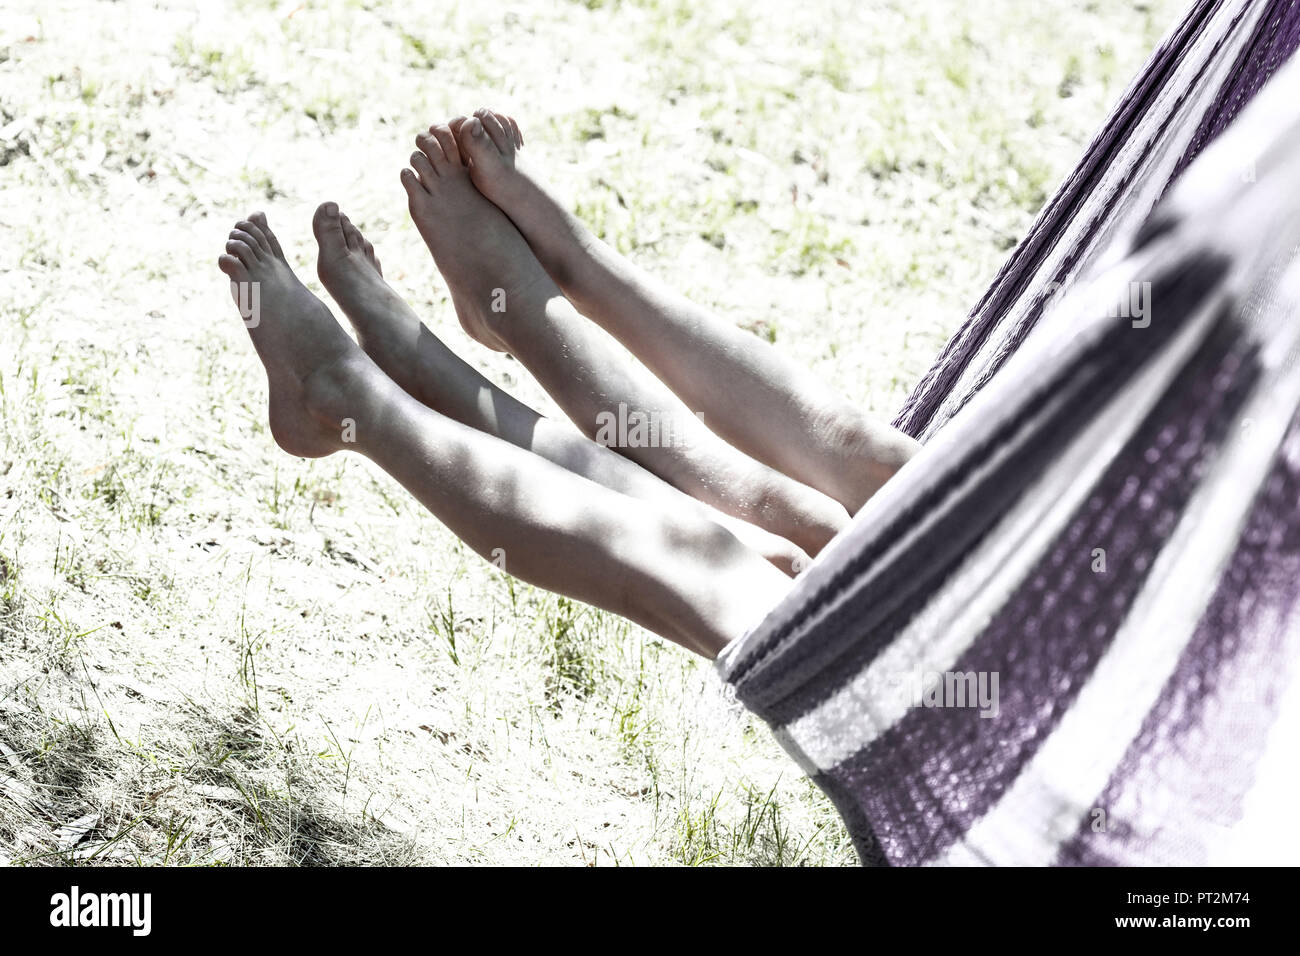 2 girls swing their legs out of a hammock while rocking Stock Photo